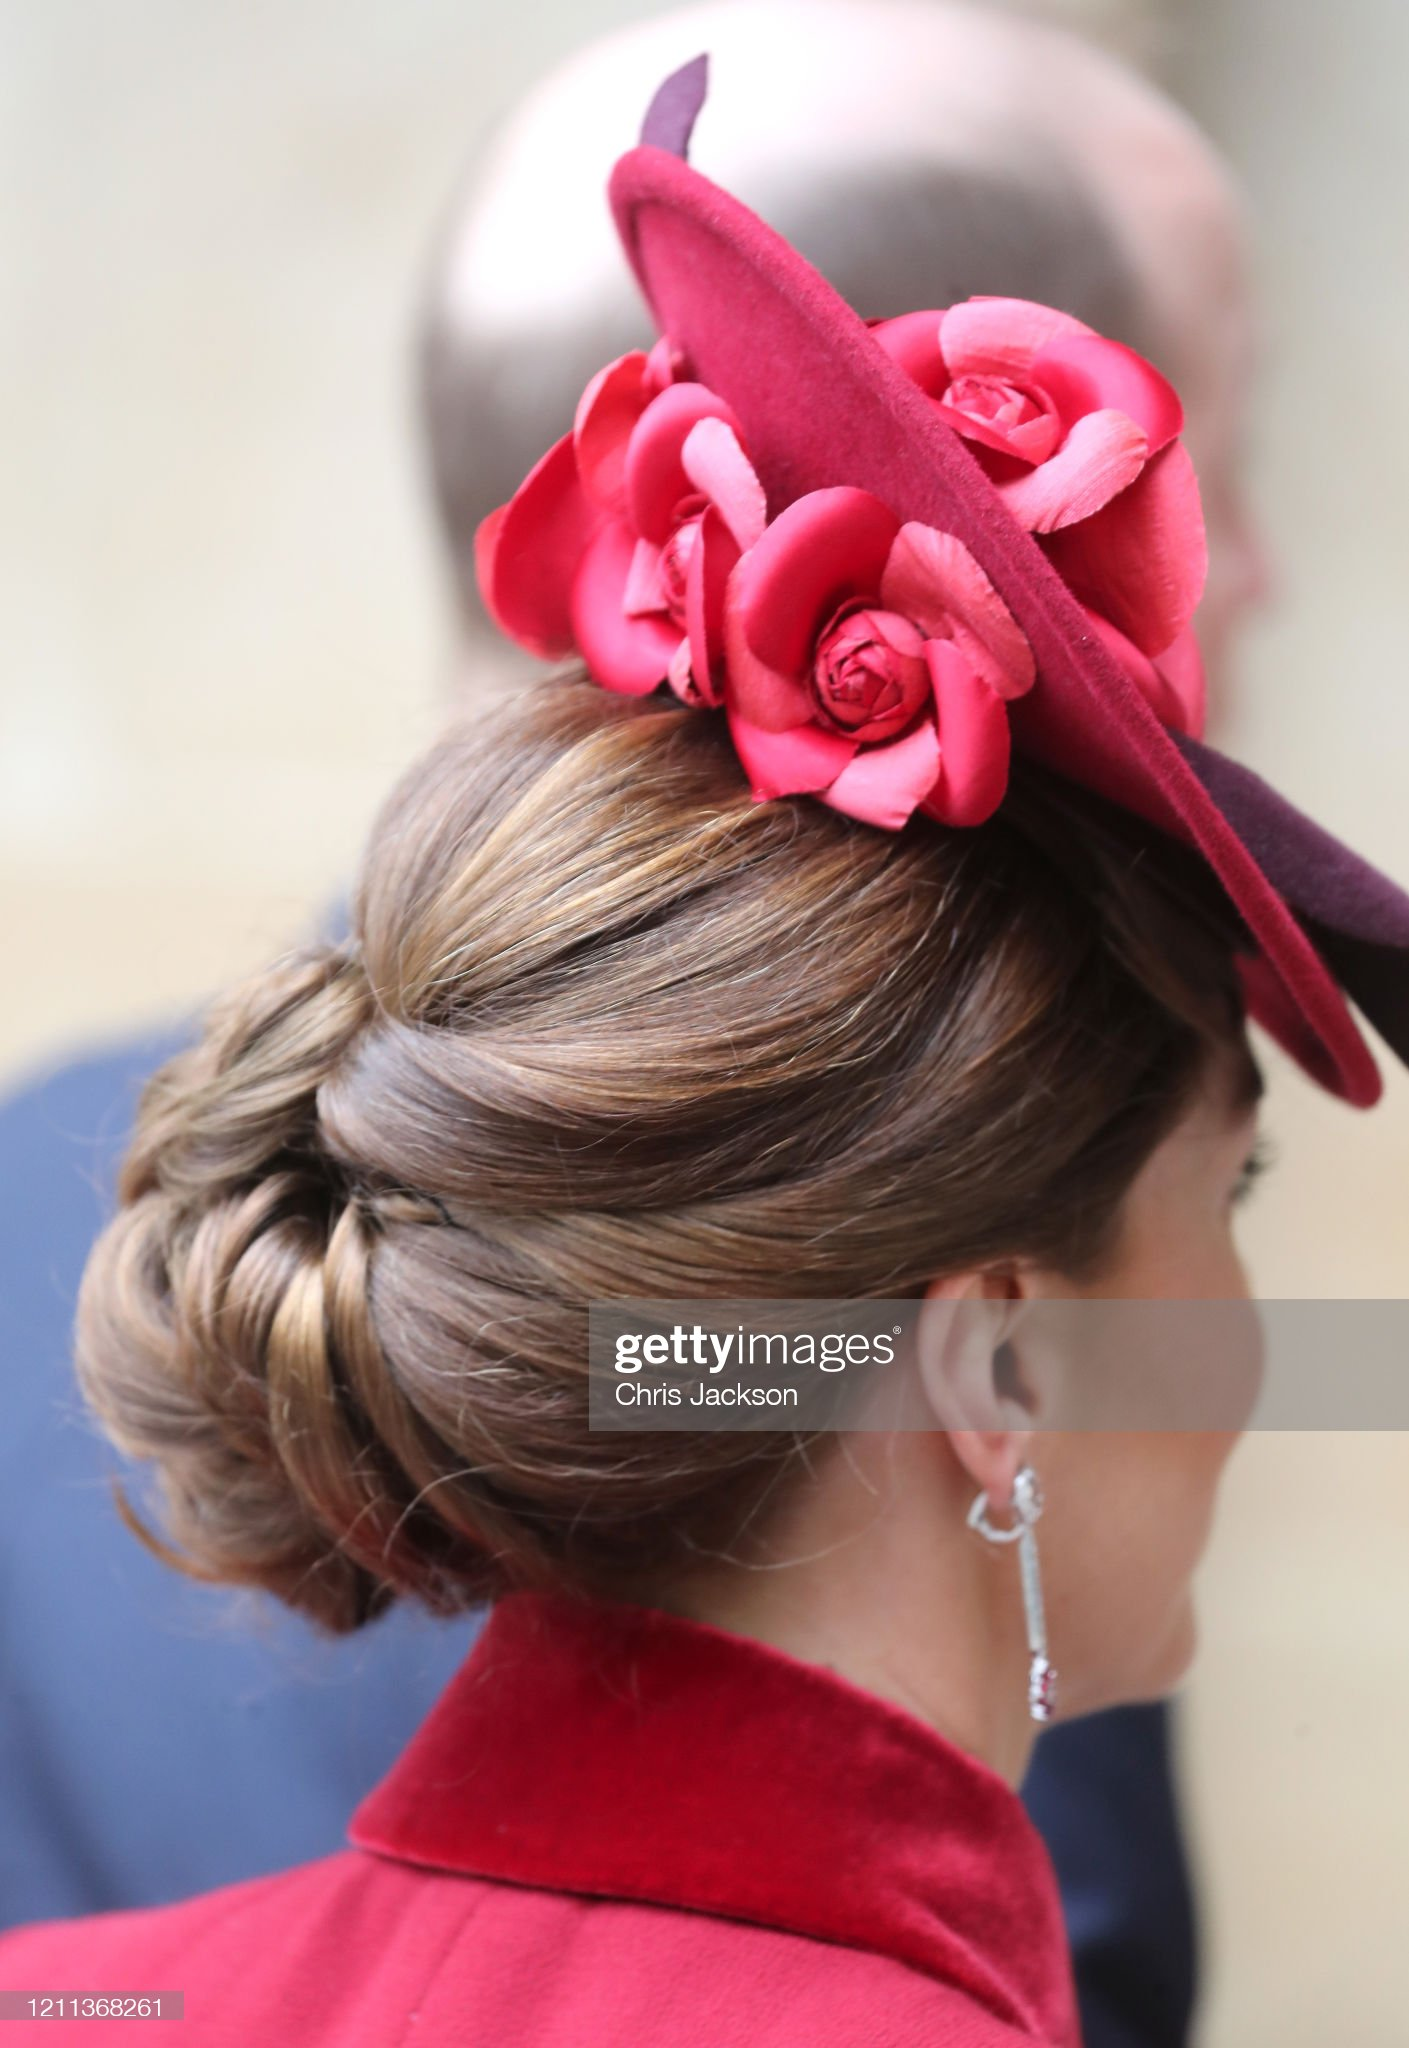 https://media.gettyimages.com/photos/catherine-duchess-of-cambridge-hat-detail-attend-the-commonwealth-day-picture-id1211368261?s=2048x2048